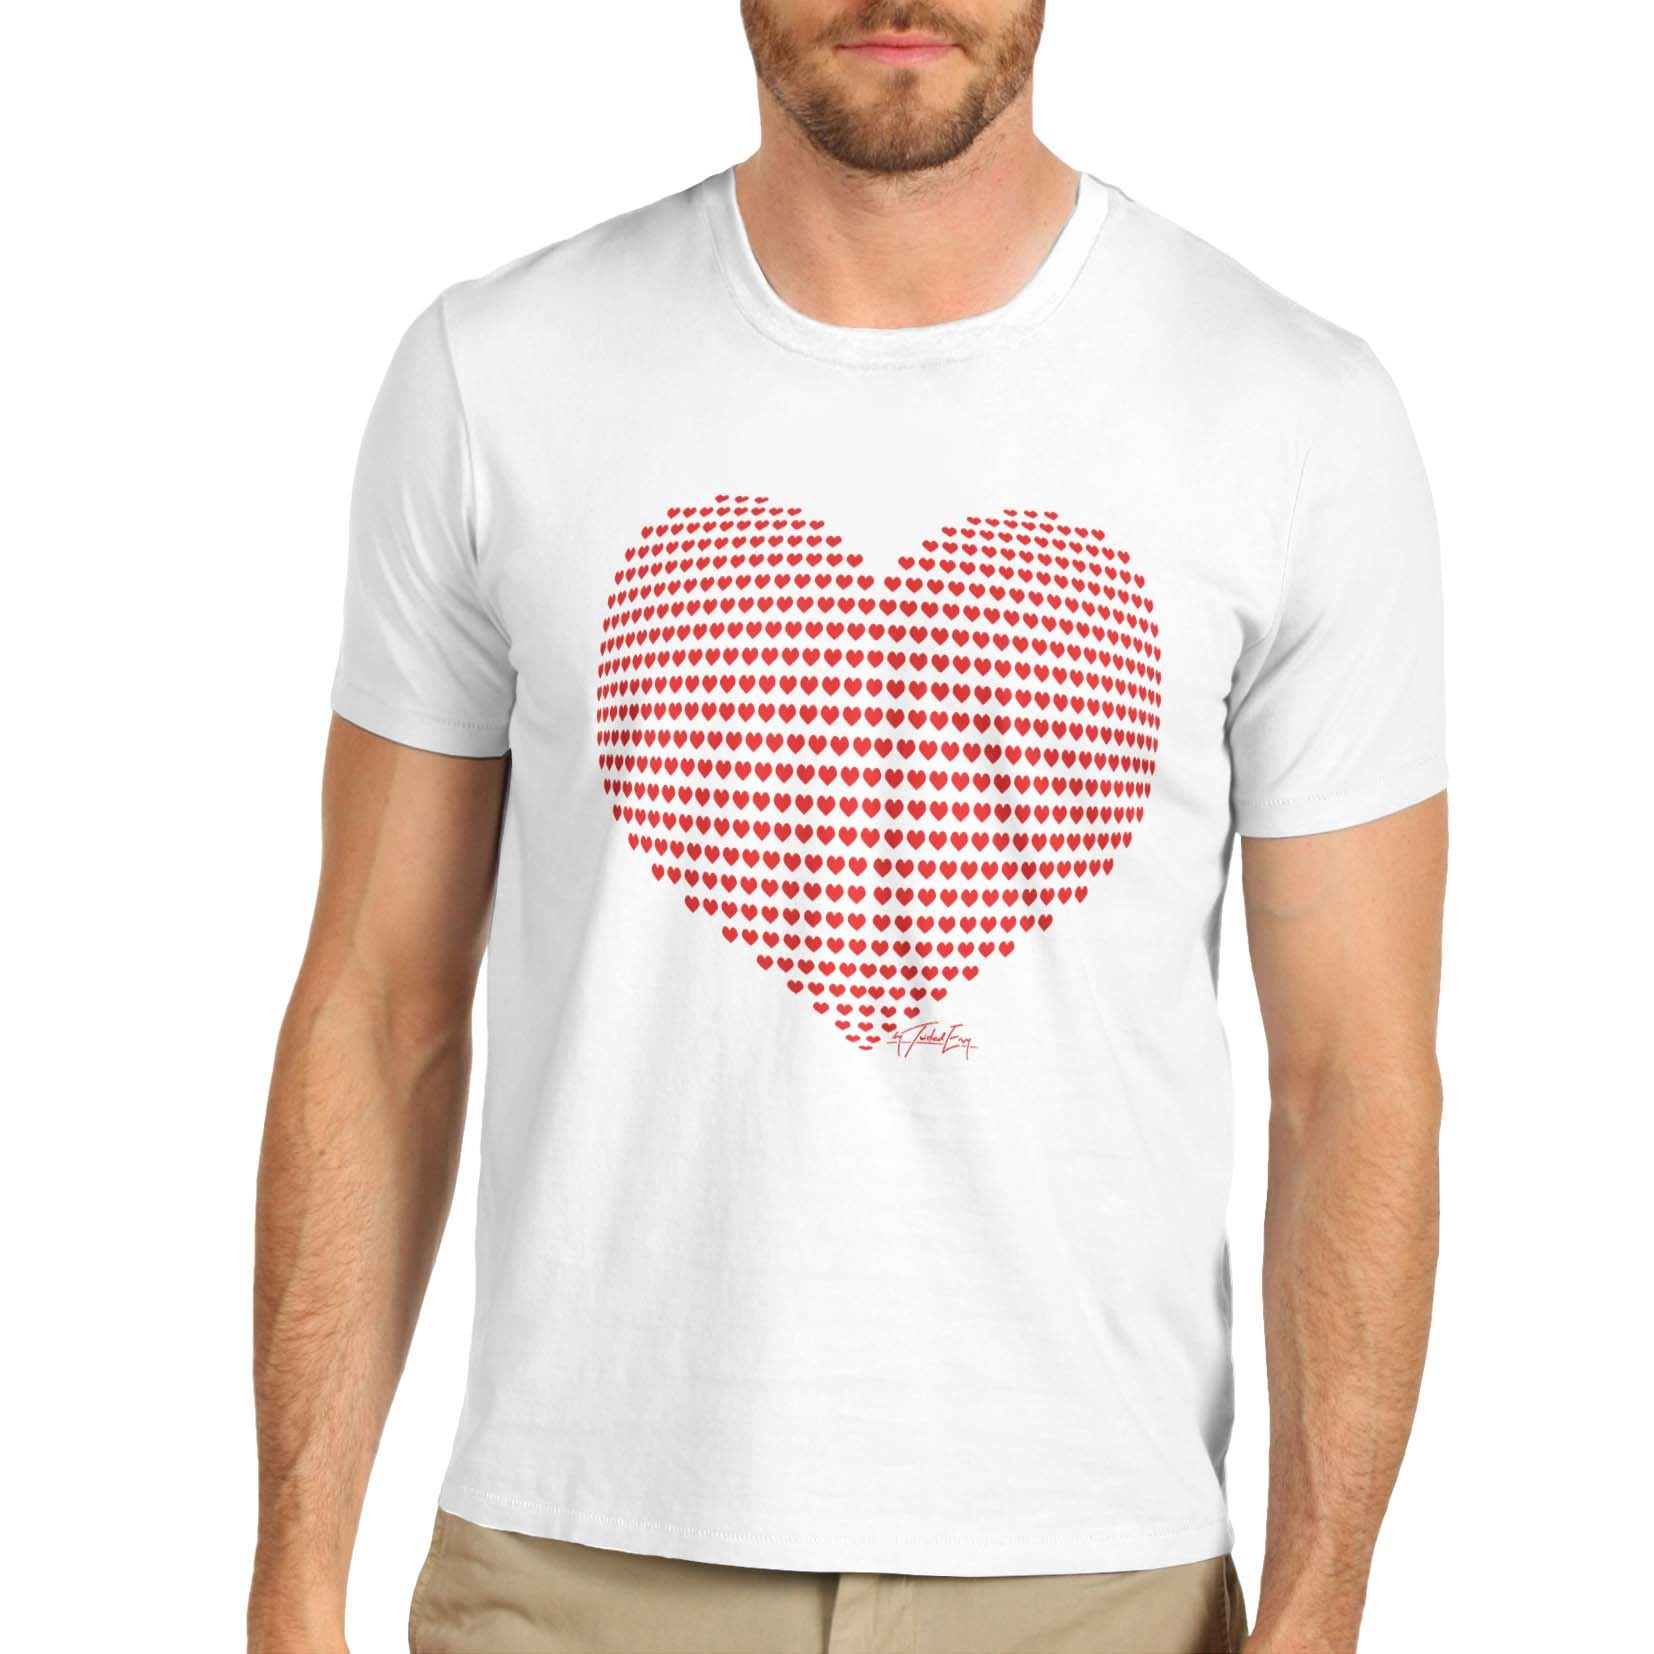 Heart design t shirt - Perfect For Everyday Wear Gift Ideas Birthdays And Other Special Occasions All Our T Shirts Are Cotton Digitaly Printied Our